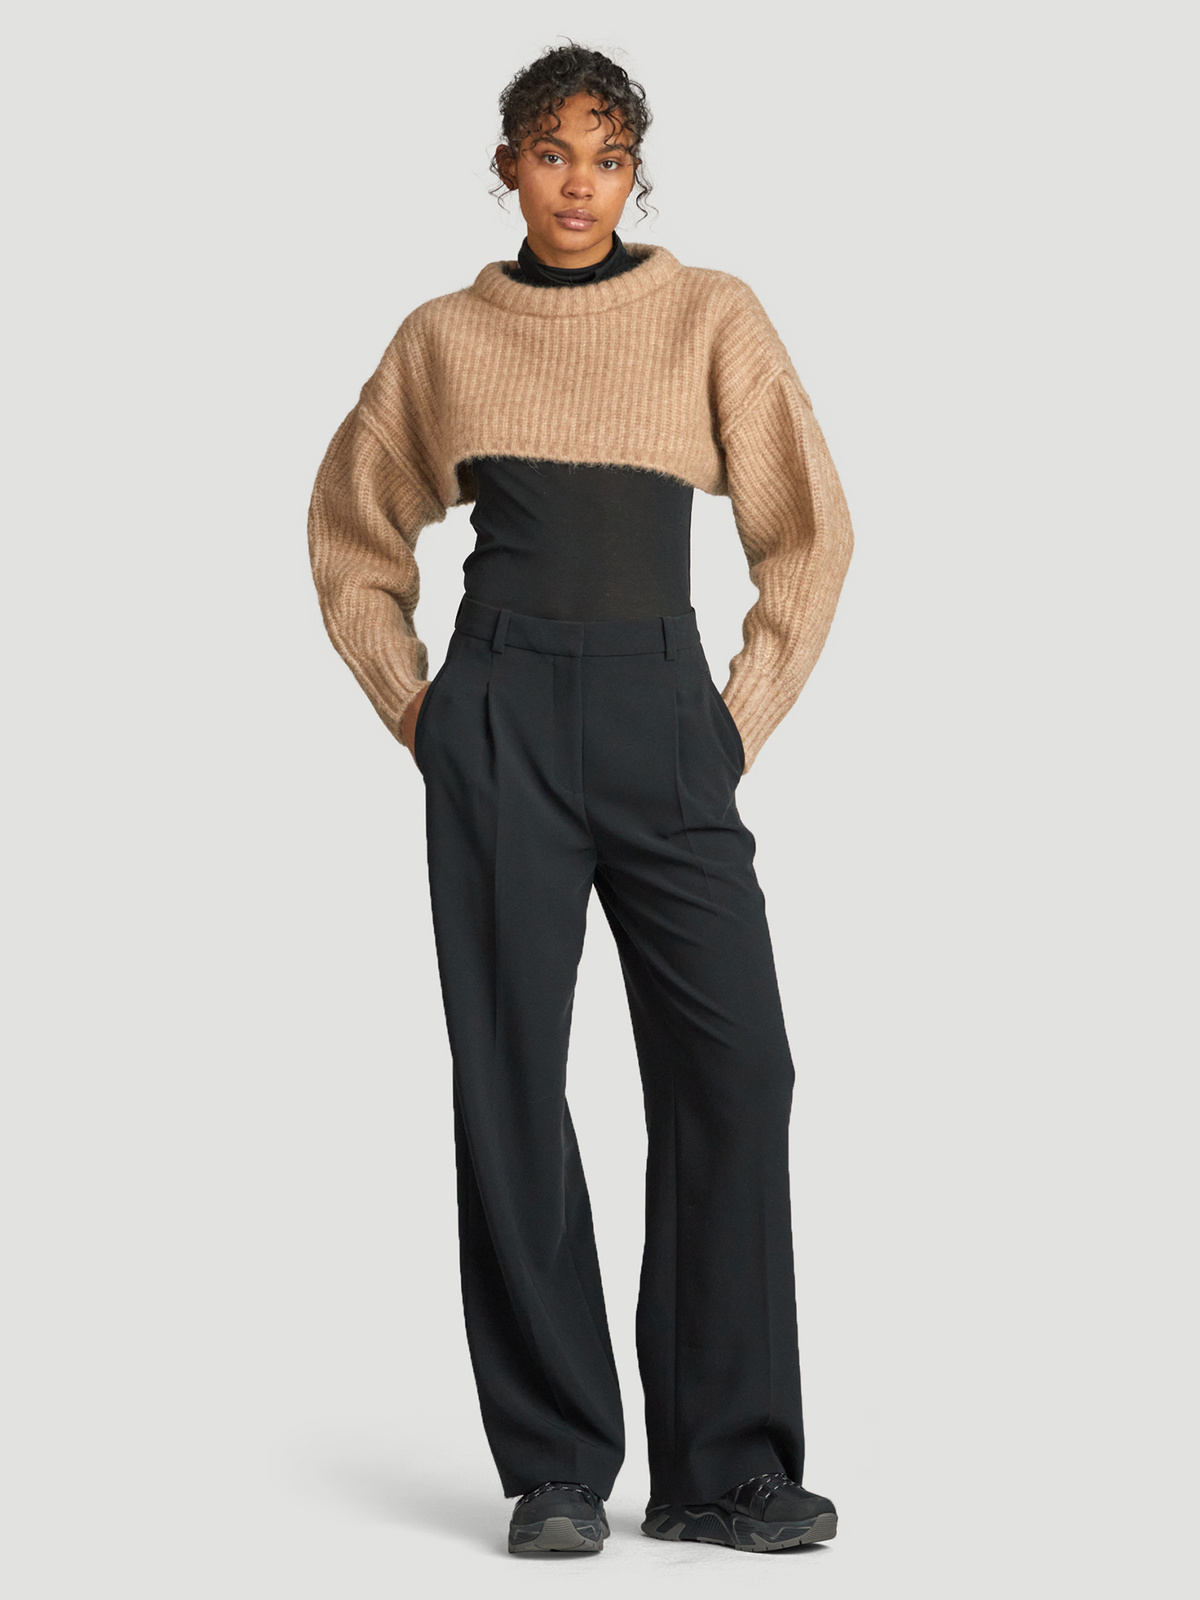 Bored Cropped Knit  Sand 2